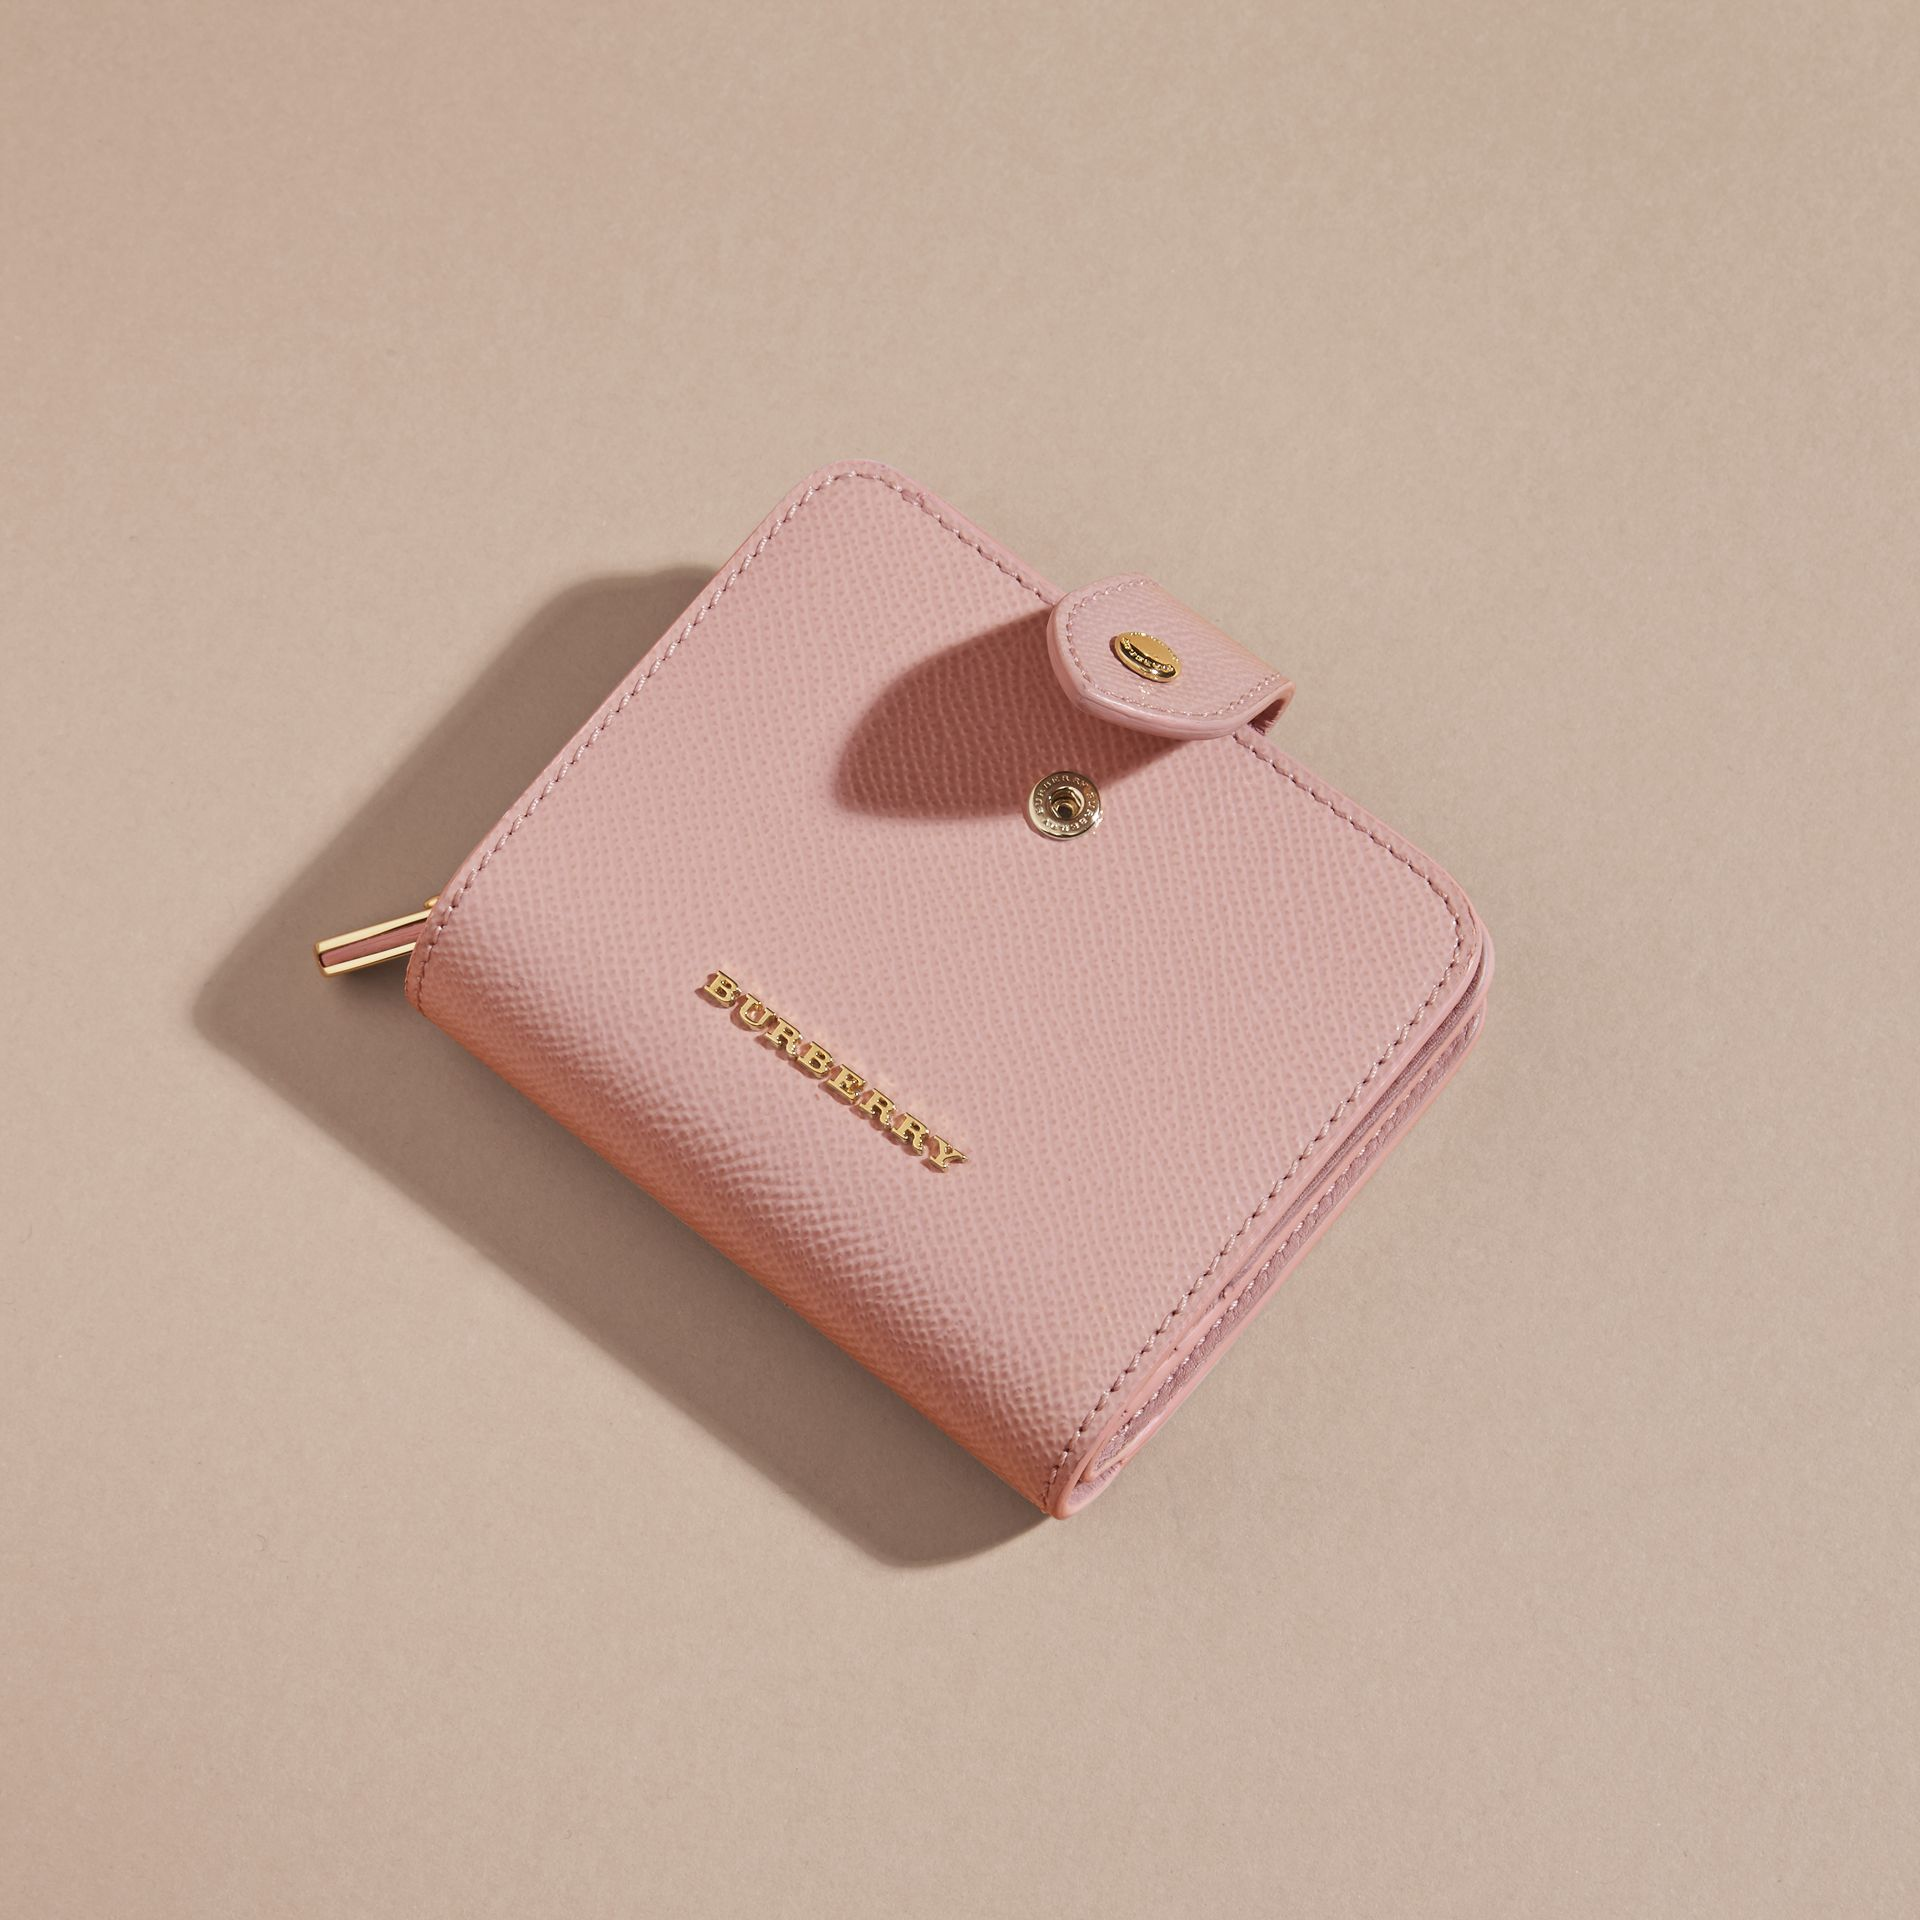 Patent London Leather Wallet in Ash Rose - gallery image 3